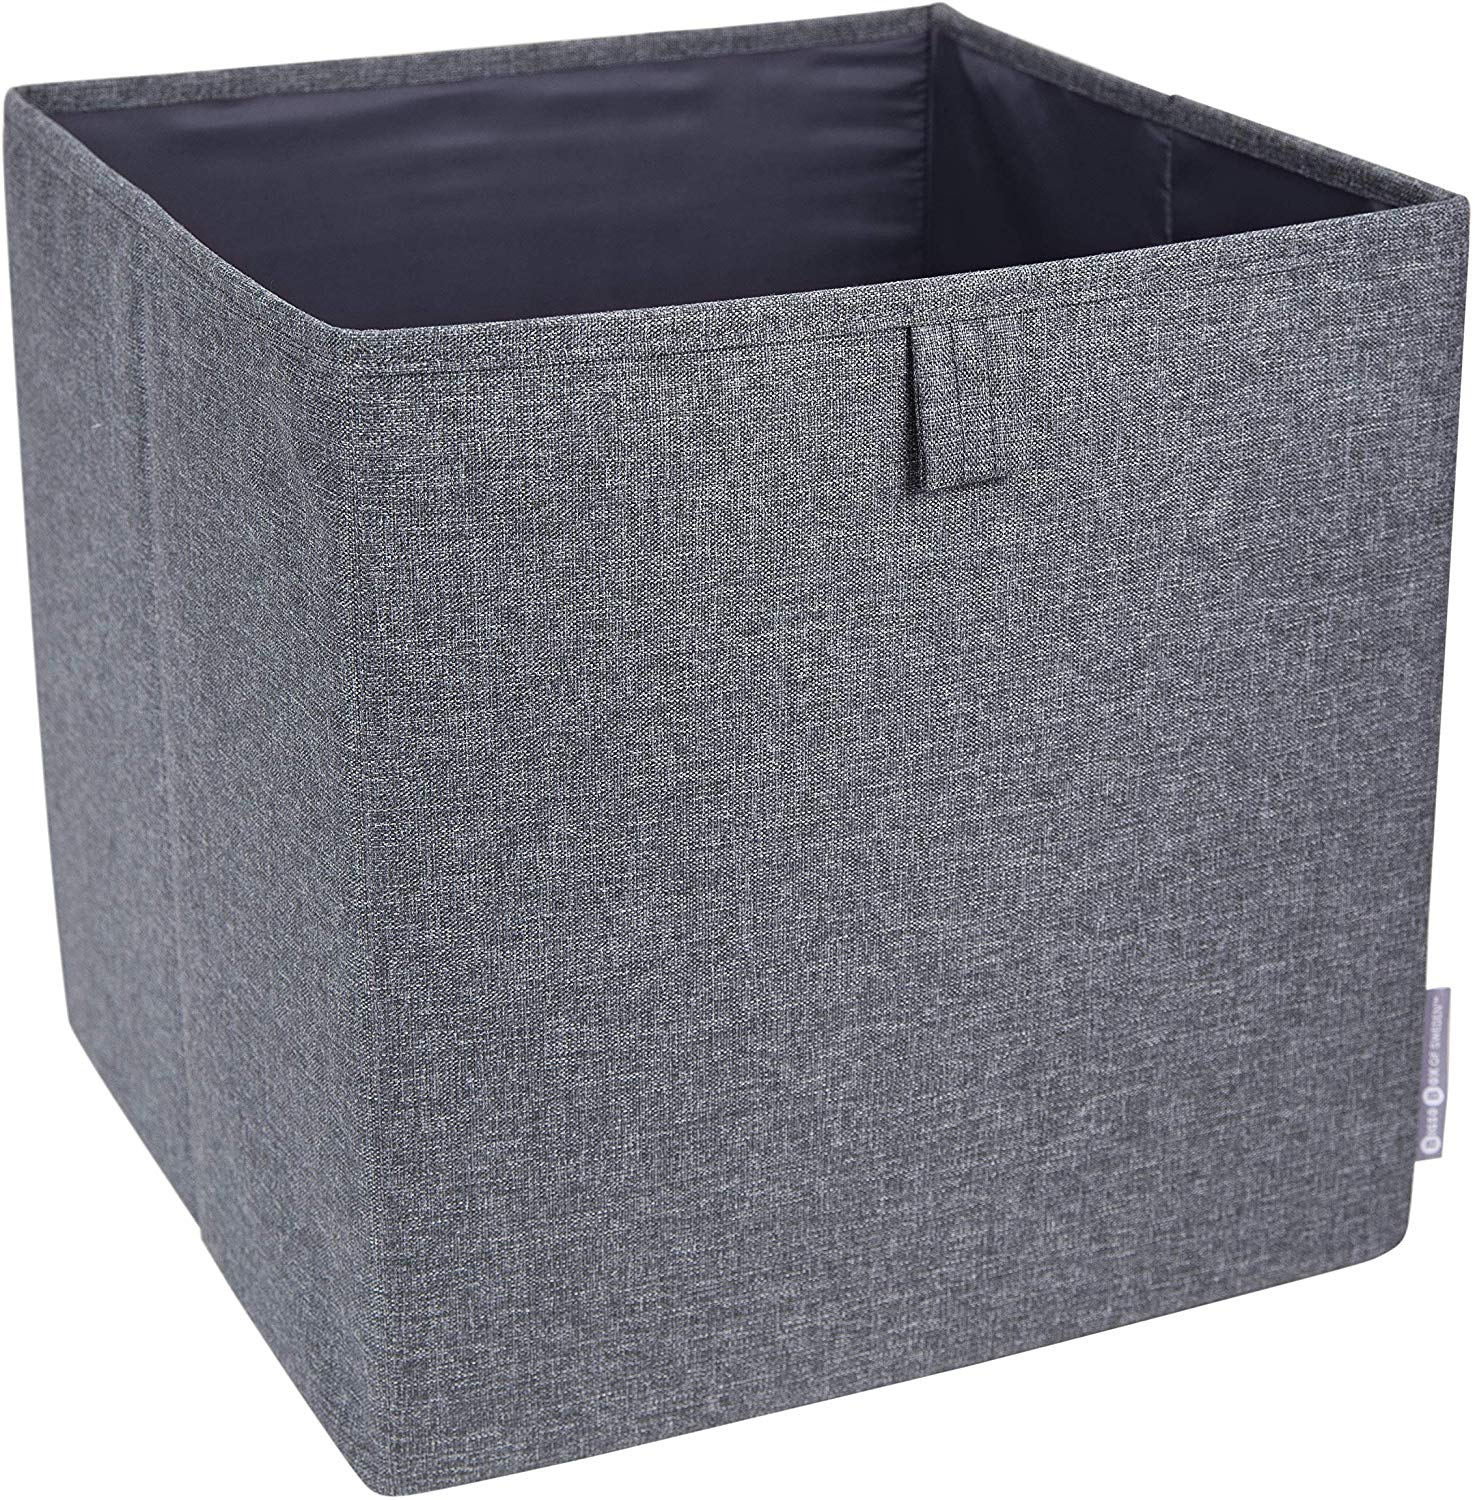 Gray 12.4 Inch x 12.4 Inch Soft Storage Cube